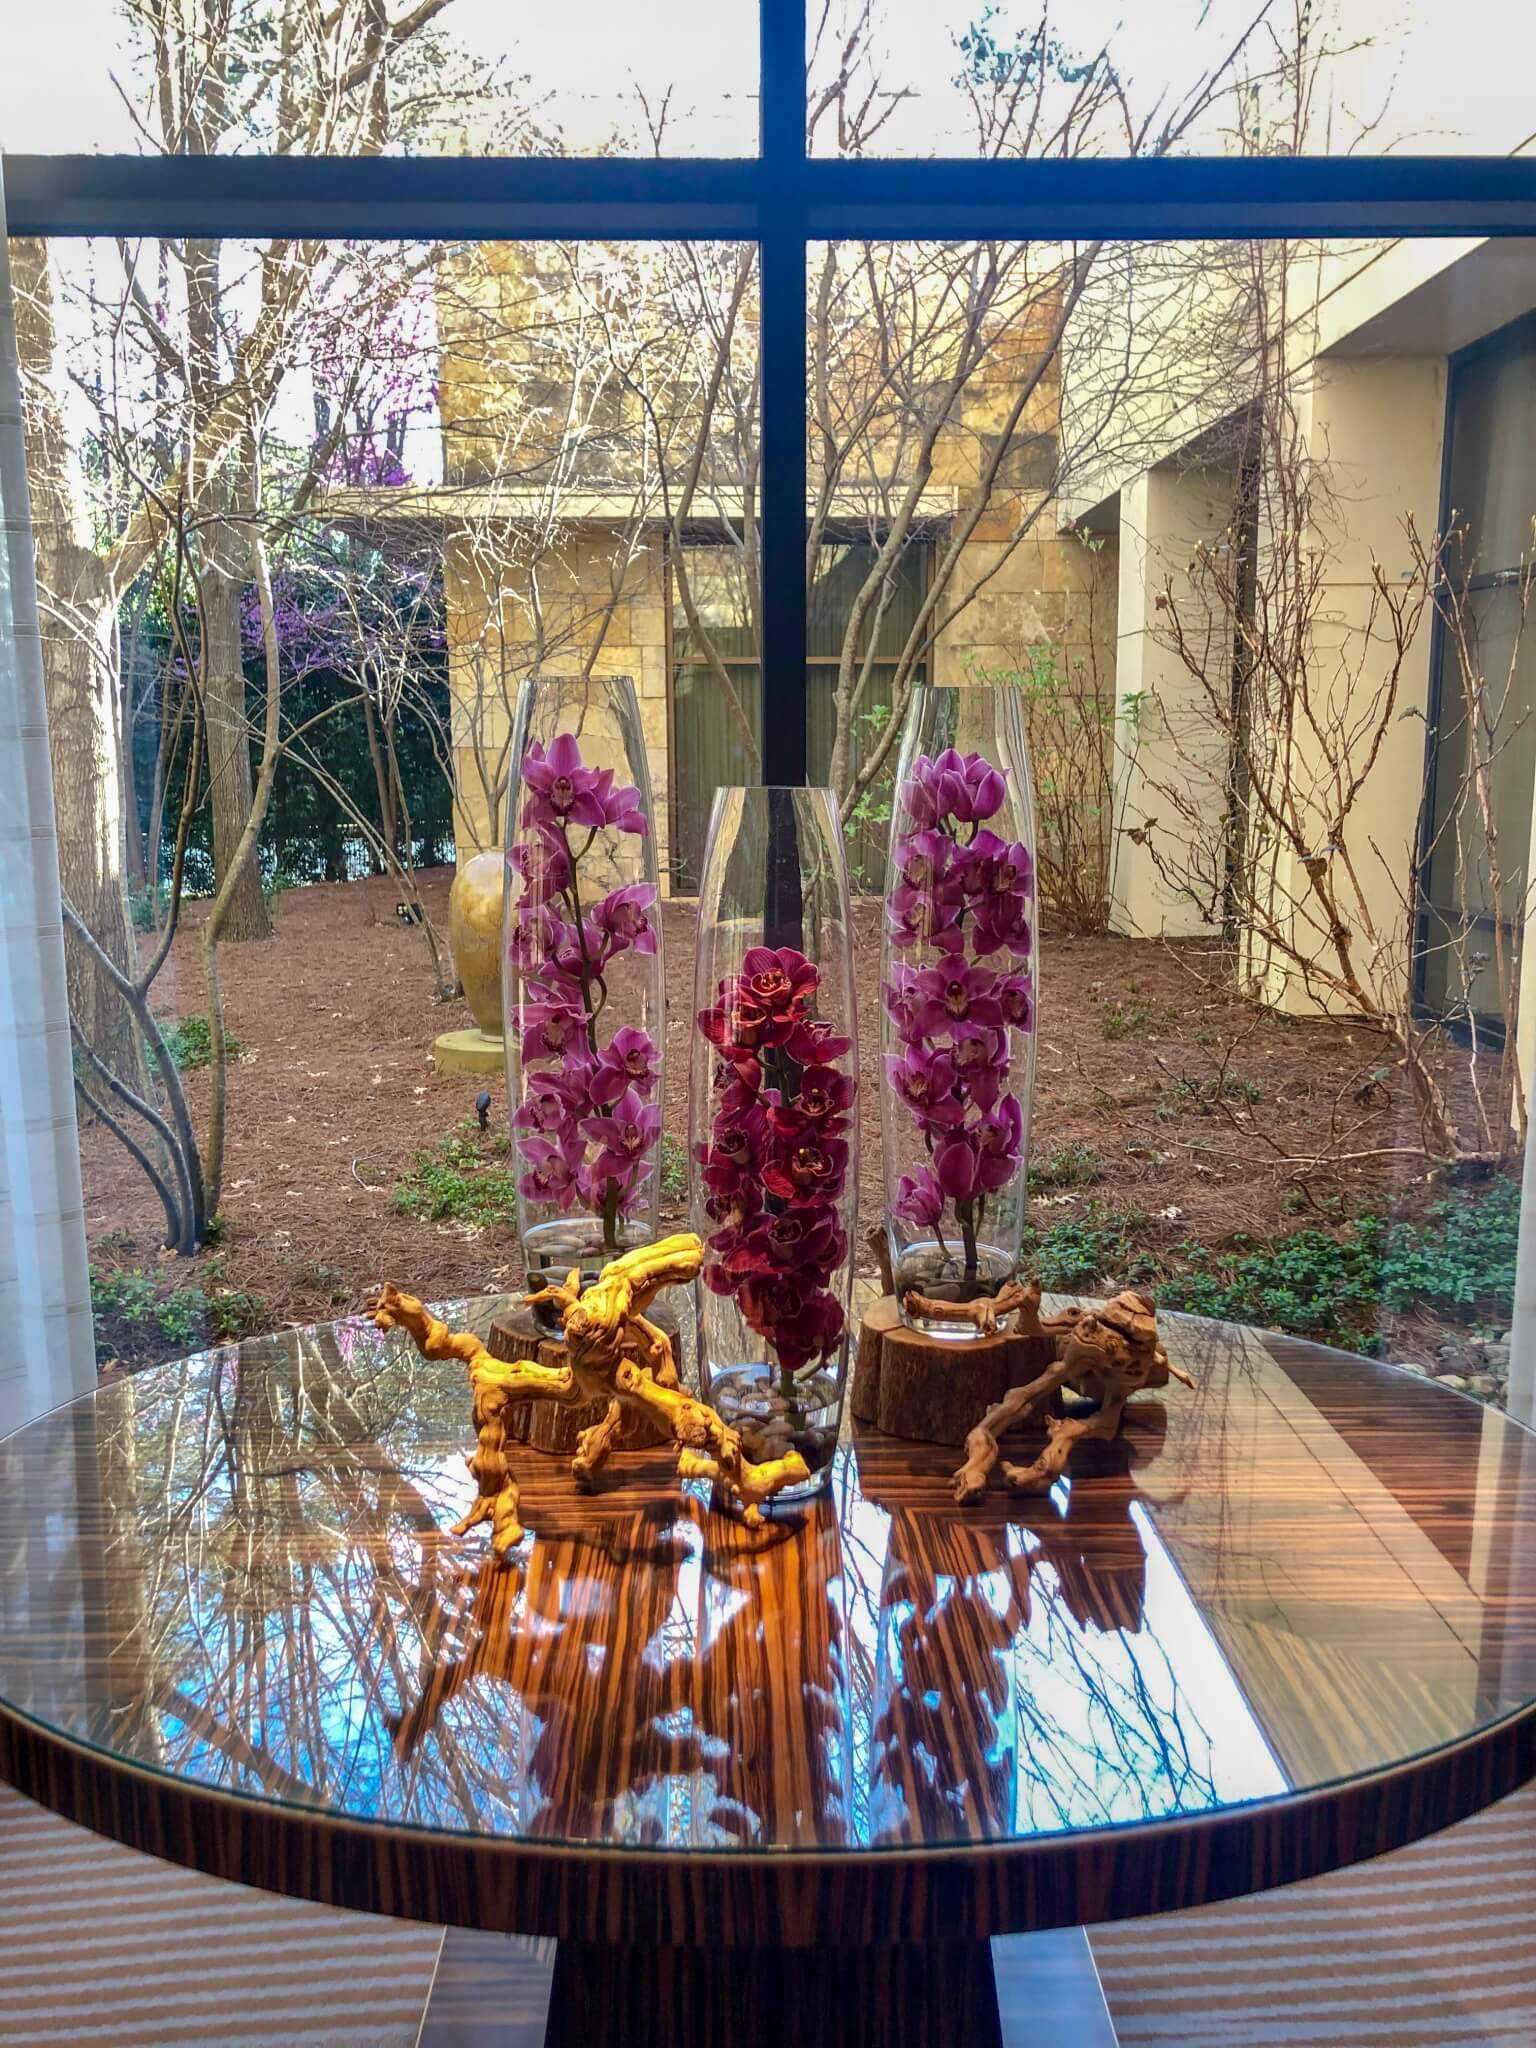 Orchid display at The Umstead Hotel and Spa